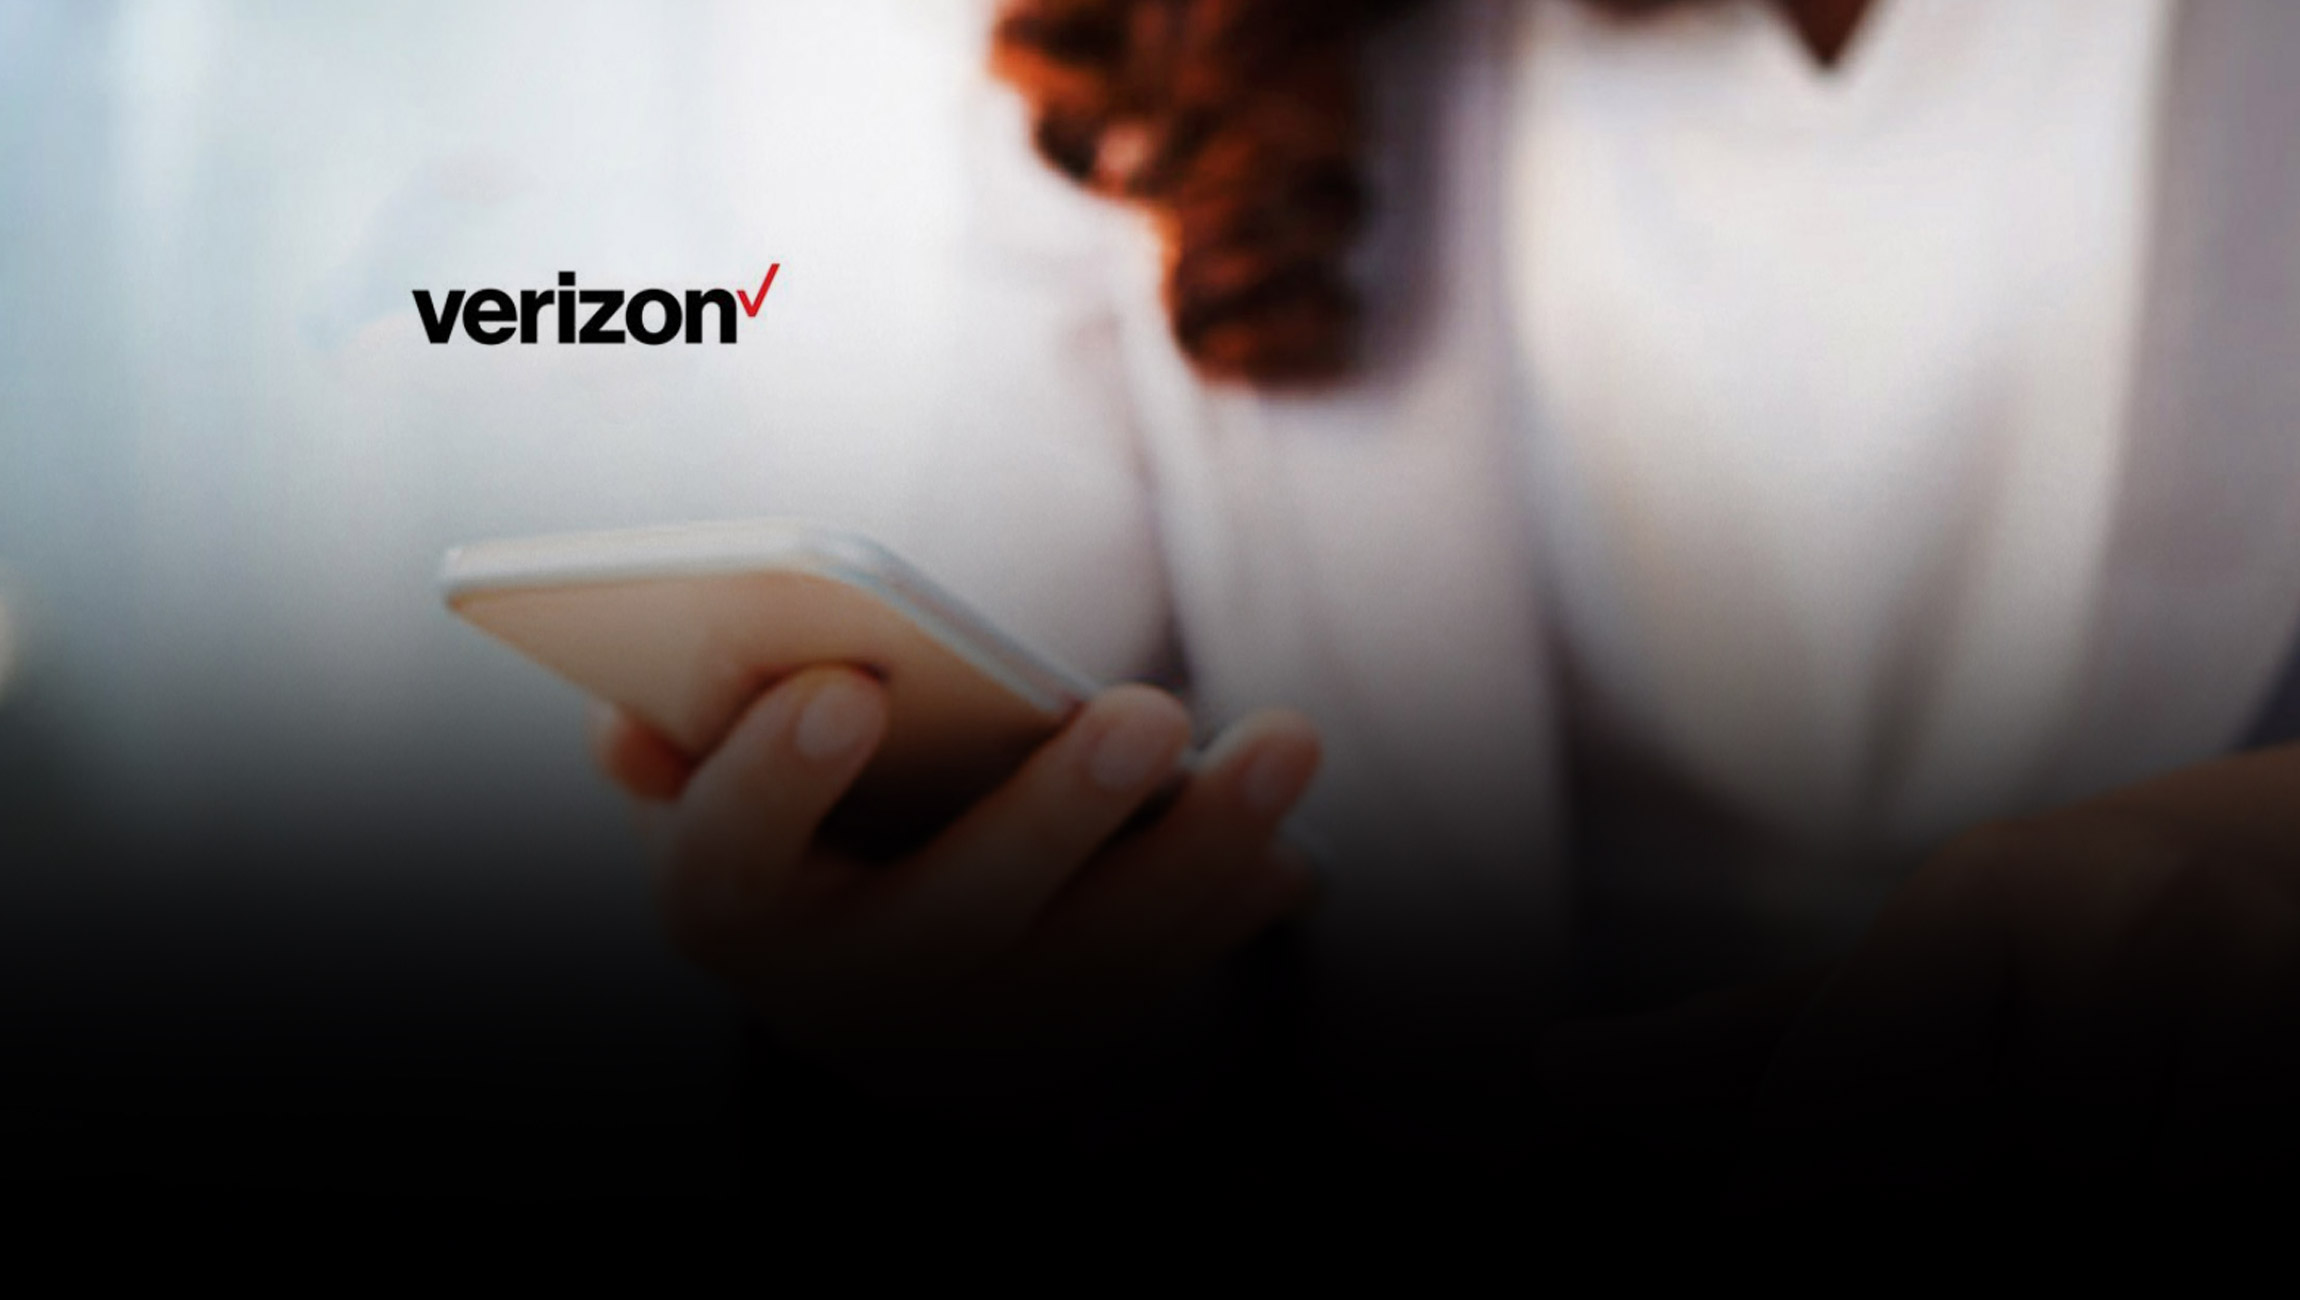 Verizon Business Teams with Deloitte to Expand 5G and Mobile Edge Computing Applications